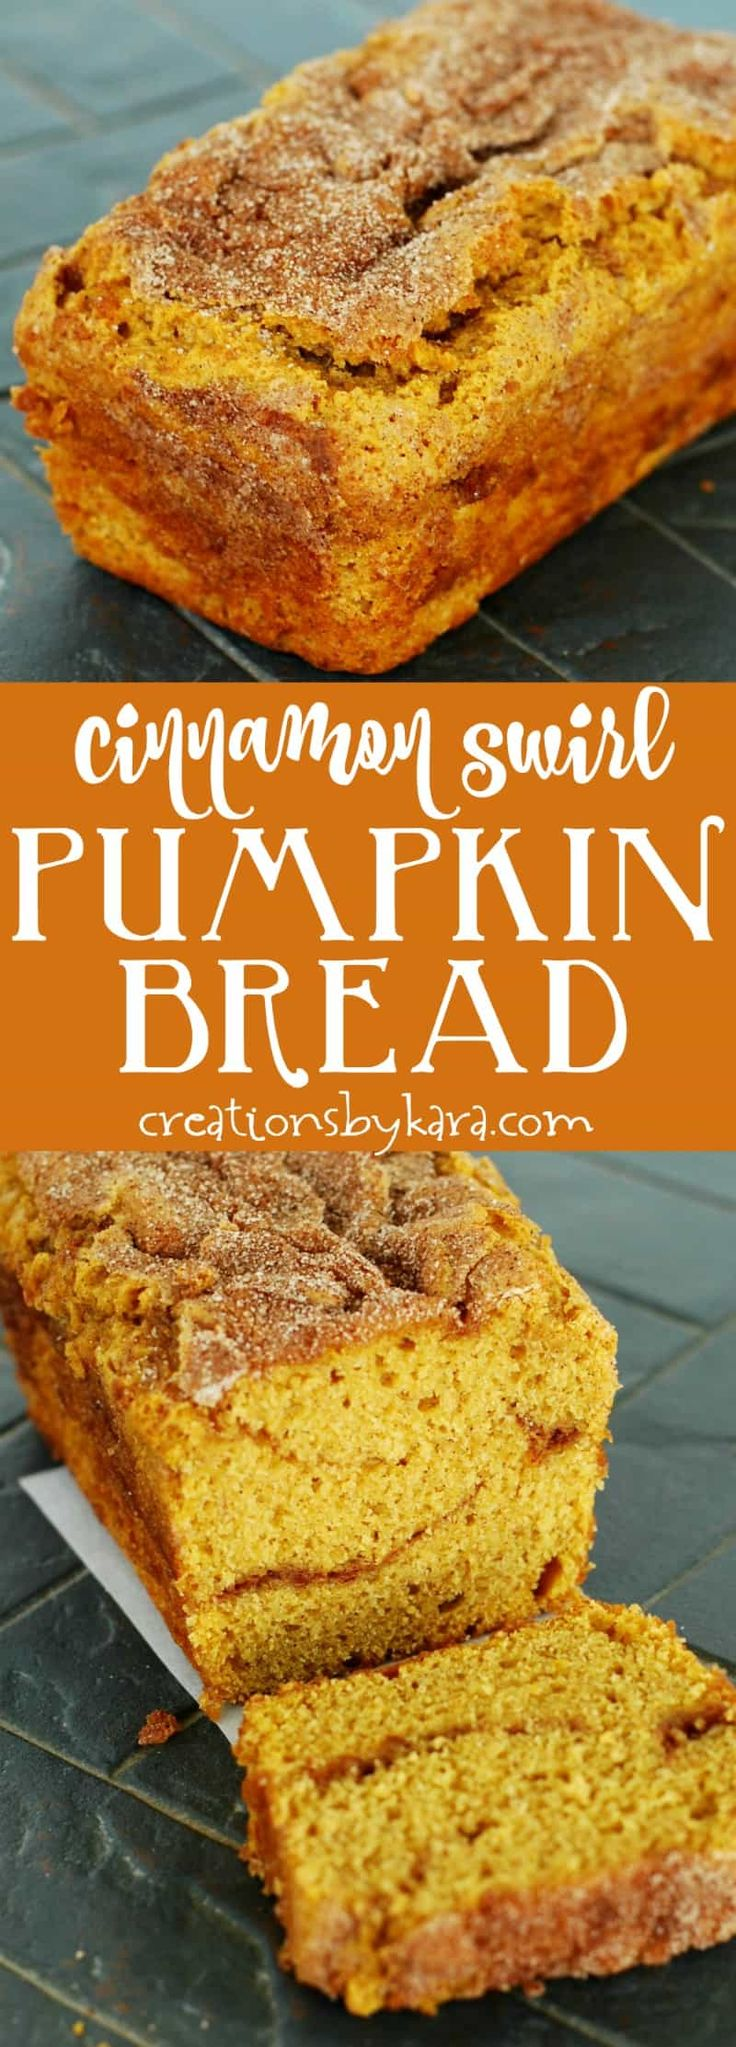 Cinnamon Swirl Pumpkin Bread - moist pumpkin bread with a melted cinnamon sugar ribbon and crackly top. A perfect pumpkin bread recipe!